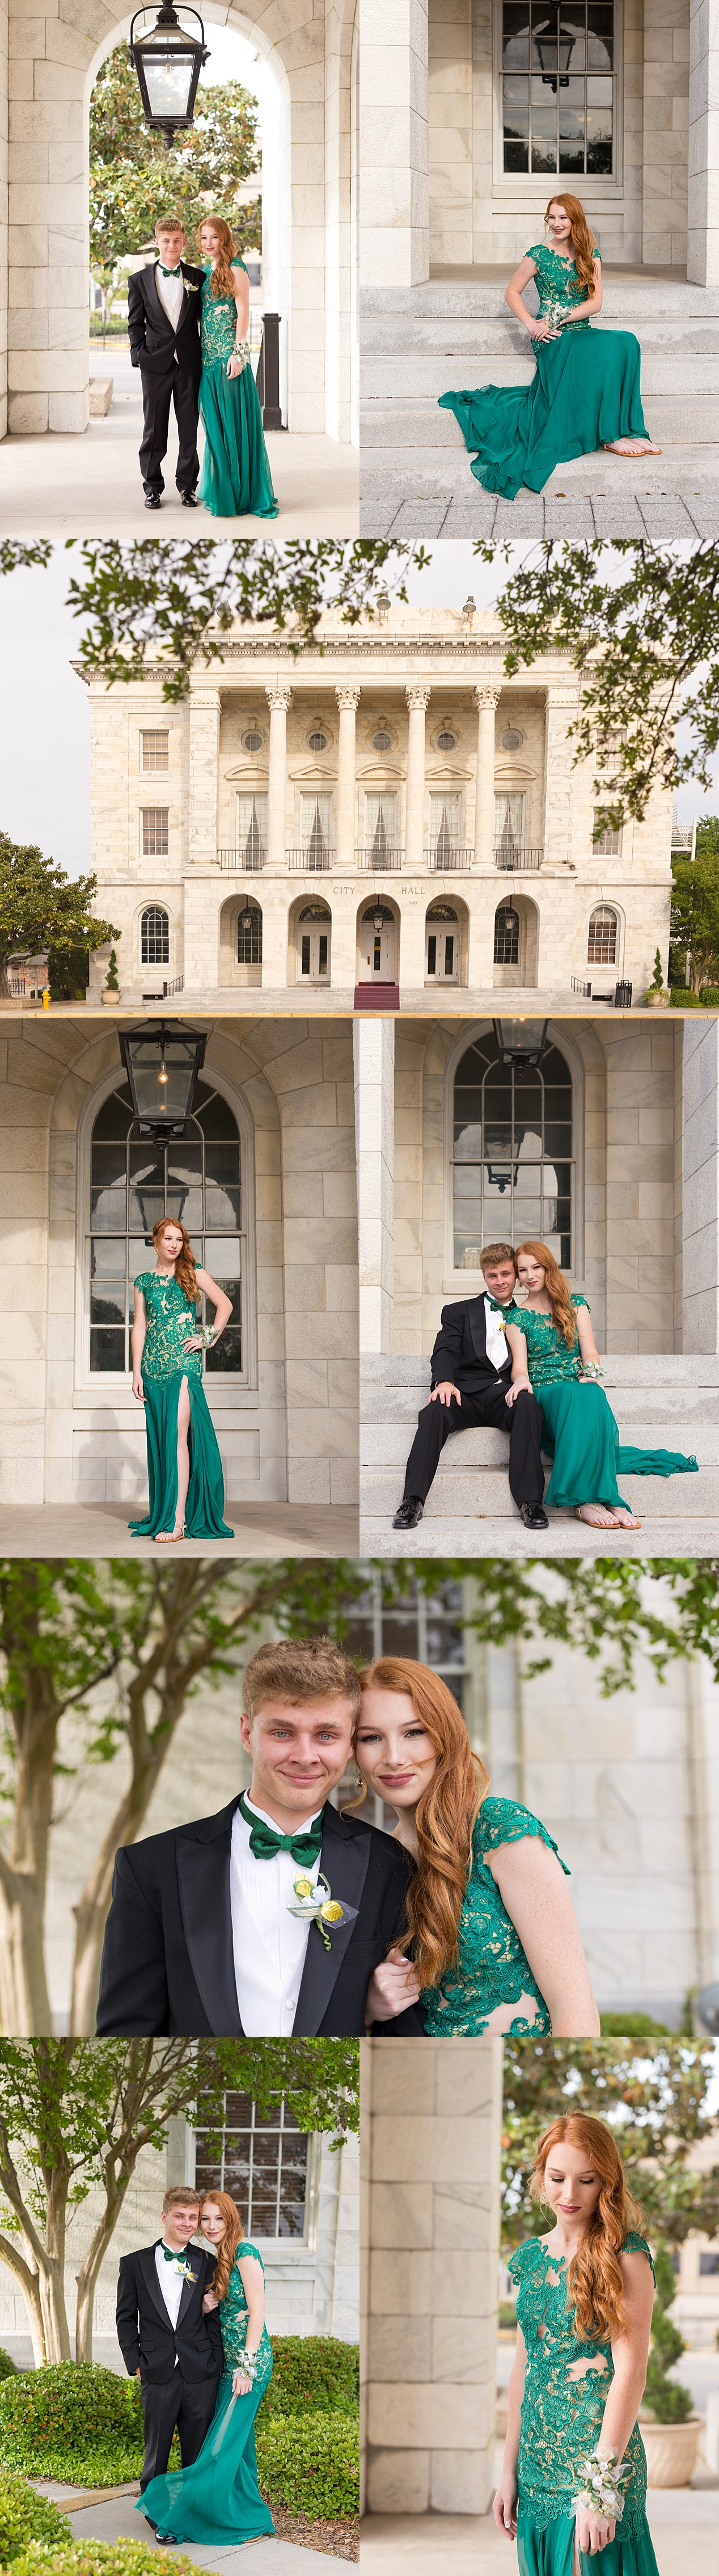 Biloxi Prom Photographer - Prom Pictures at Biloxi City Hall